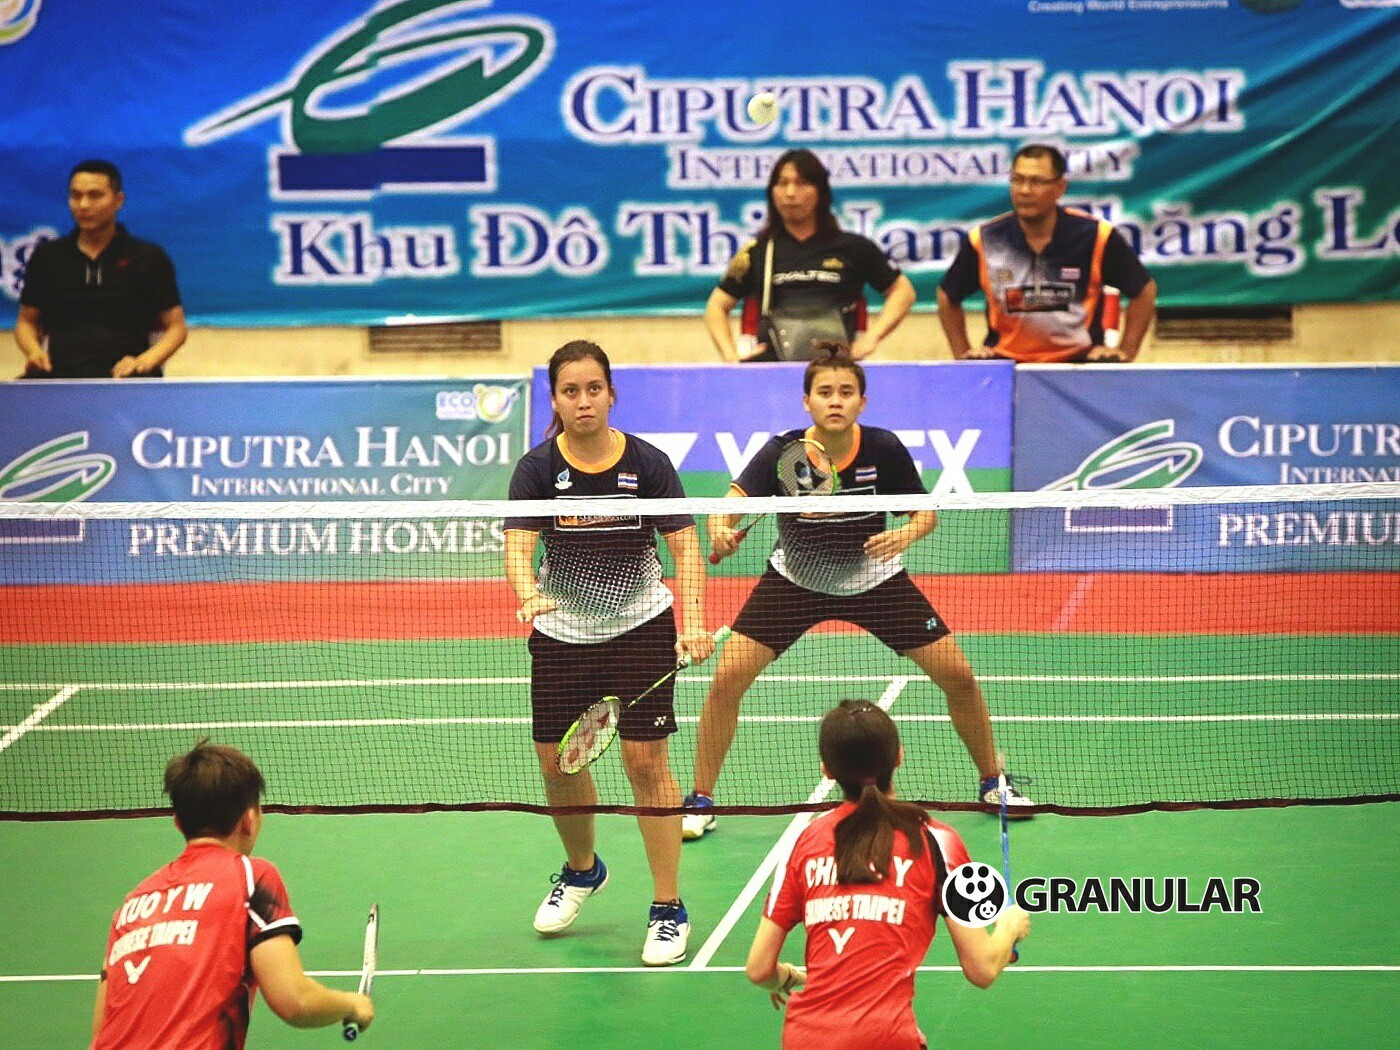 CIPUTRA HANOI - YONEX SUNRISE Vietnam International Challenge 2017 (2) รูปภาพกีฬาแบดมินตัน